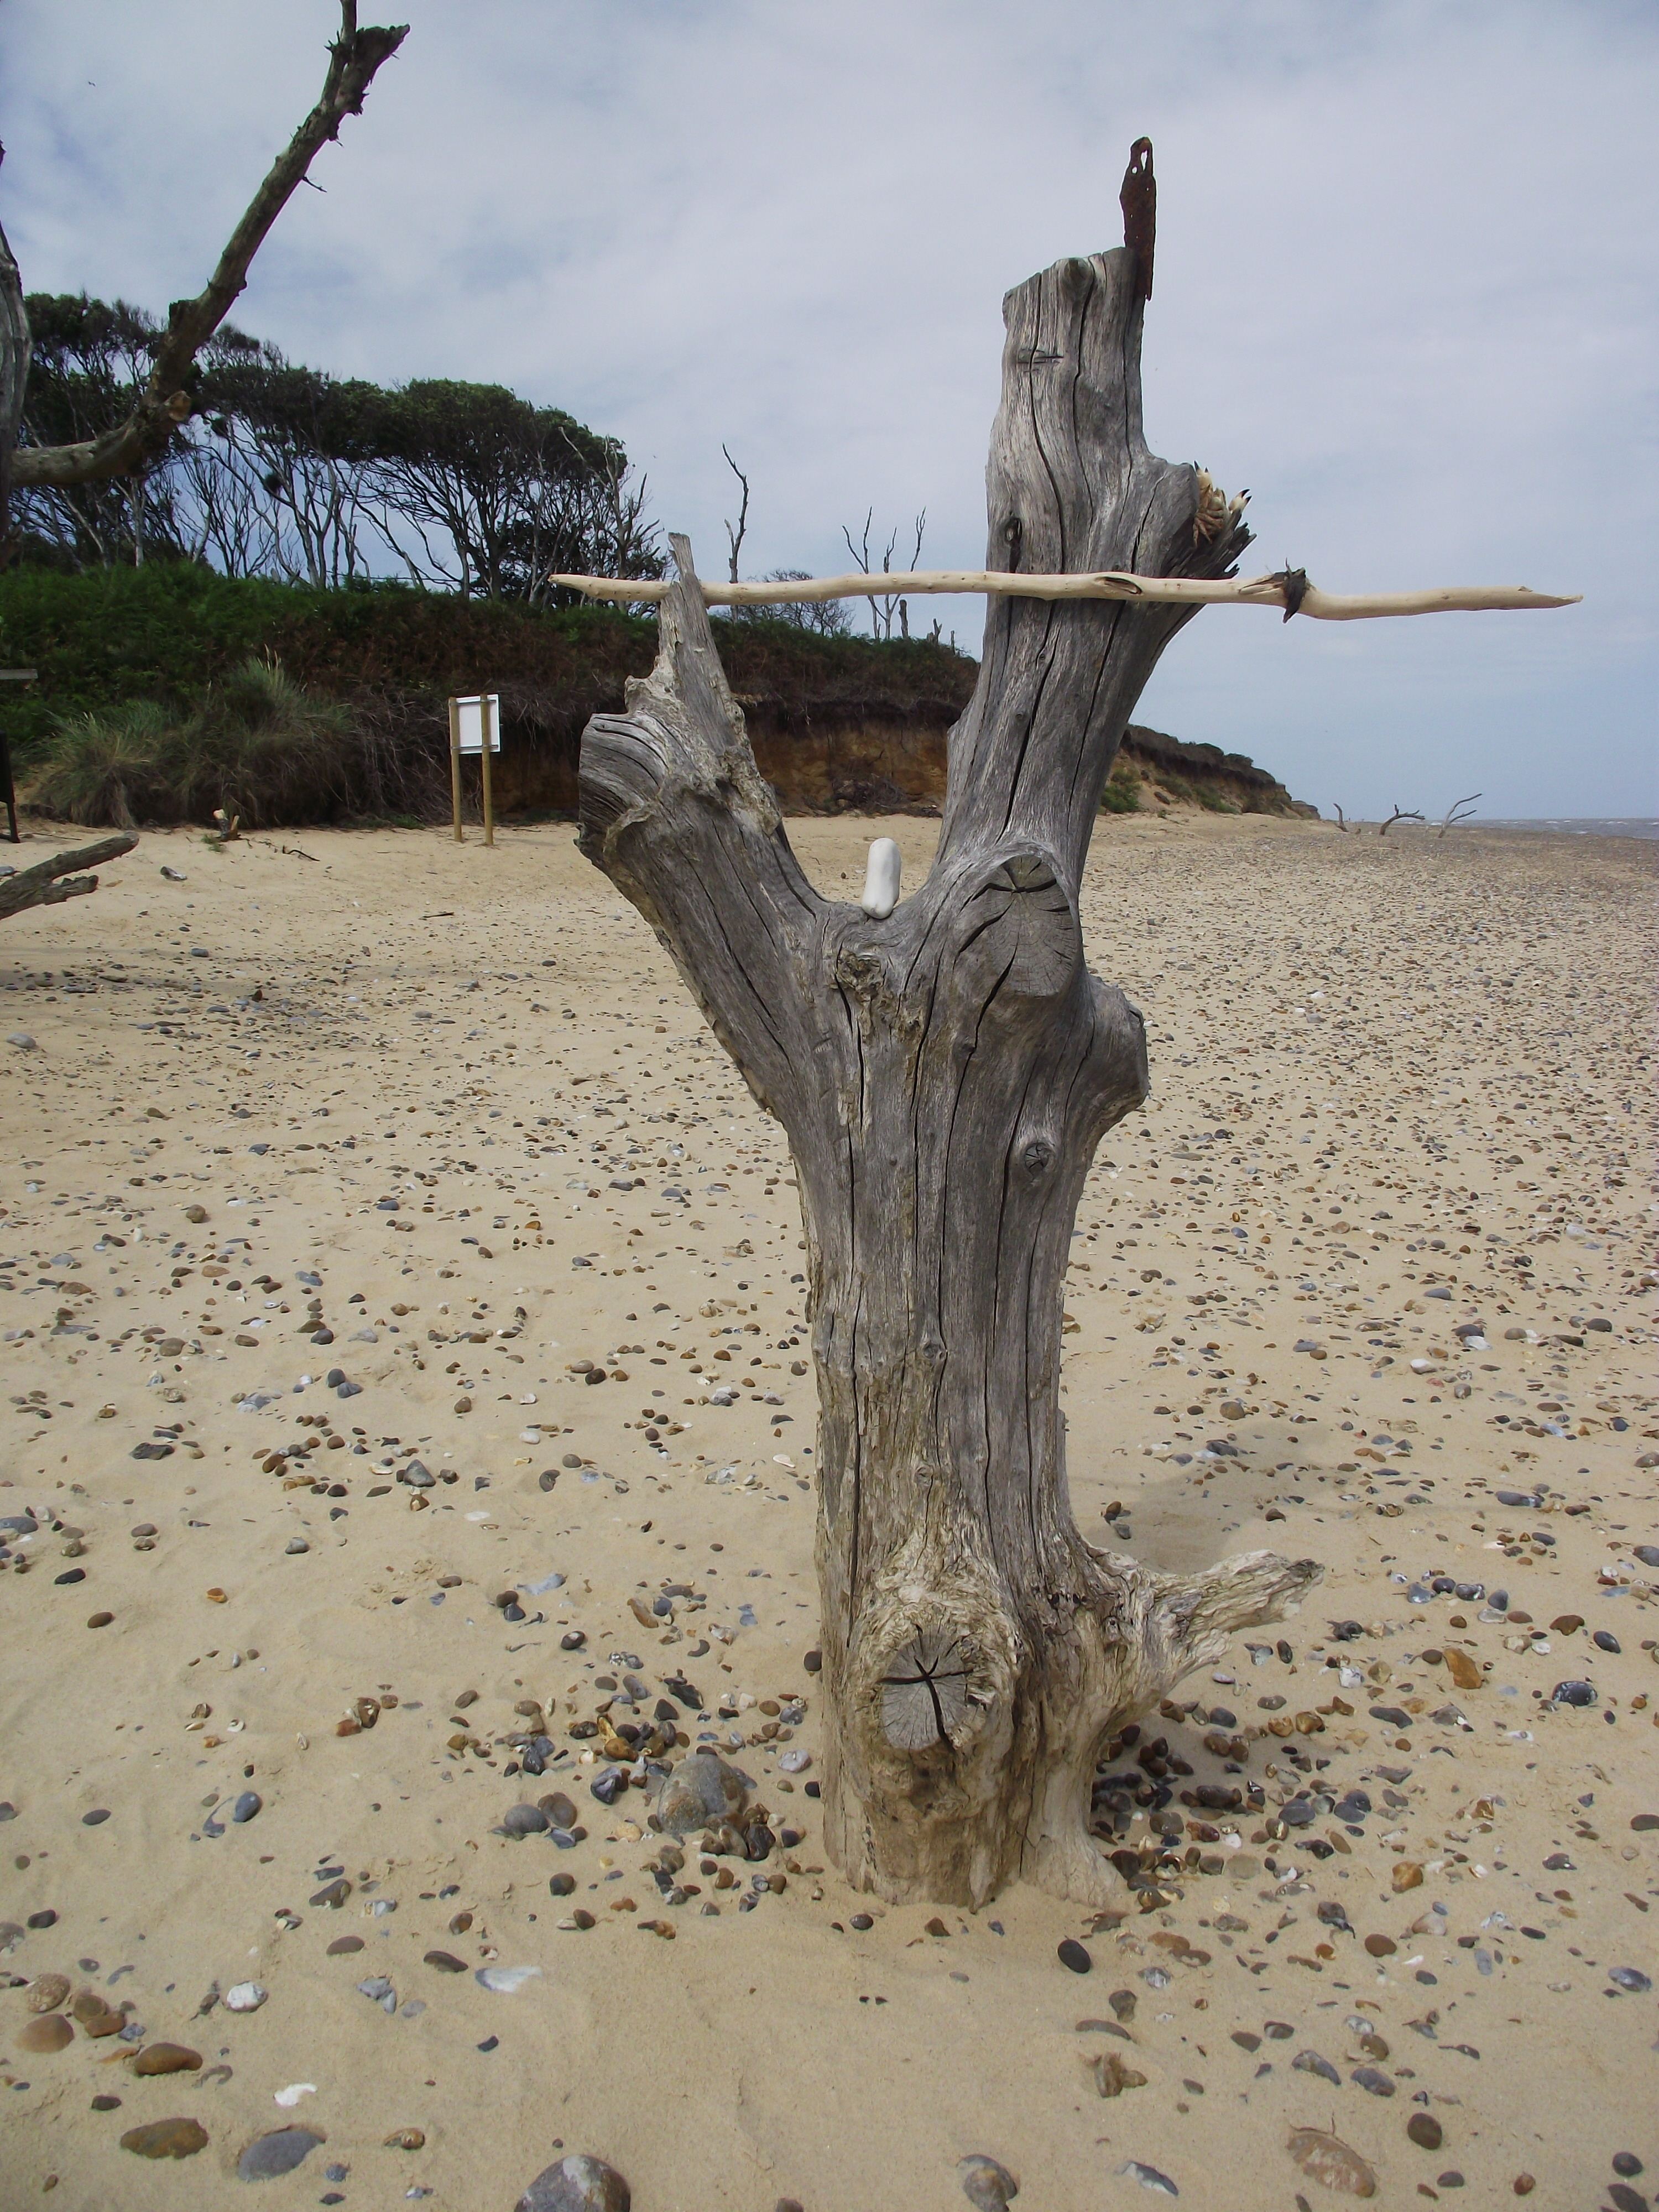 a skeleton tree on Covehithe beach marks a lunch stop for our creative beachcombing walk.